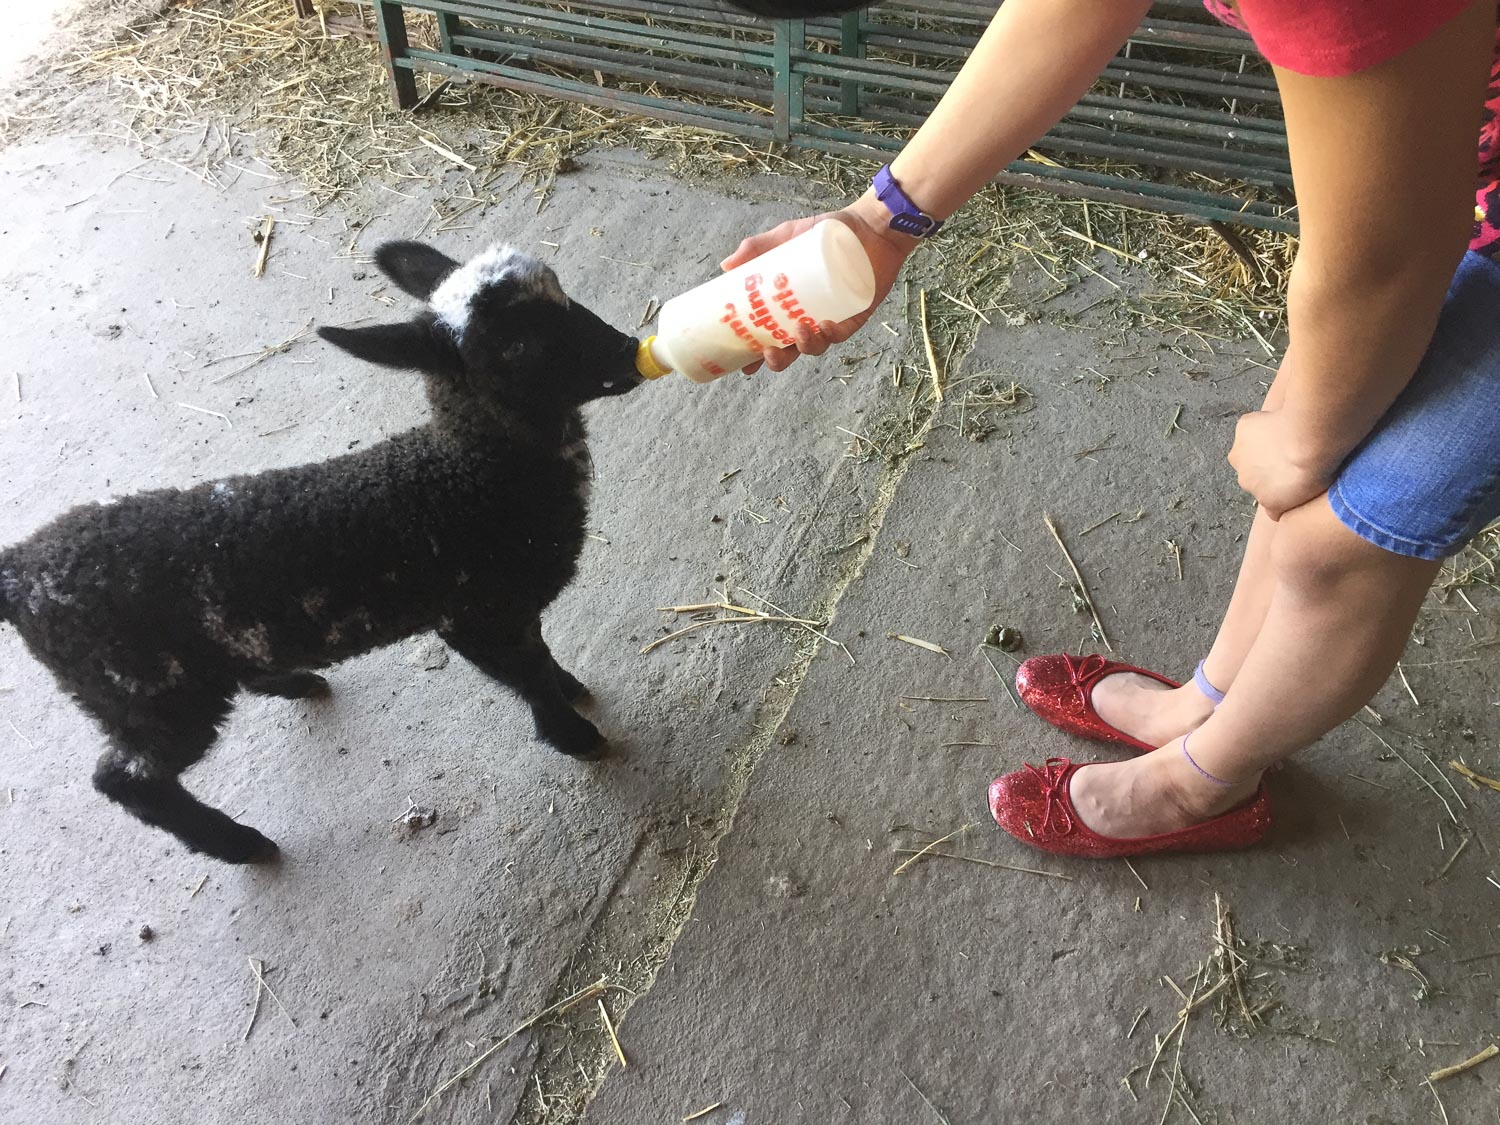 Bottle feeding lamb in red shoes.